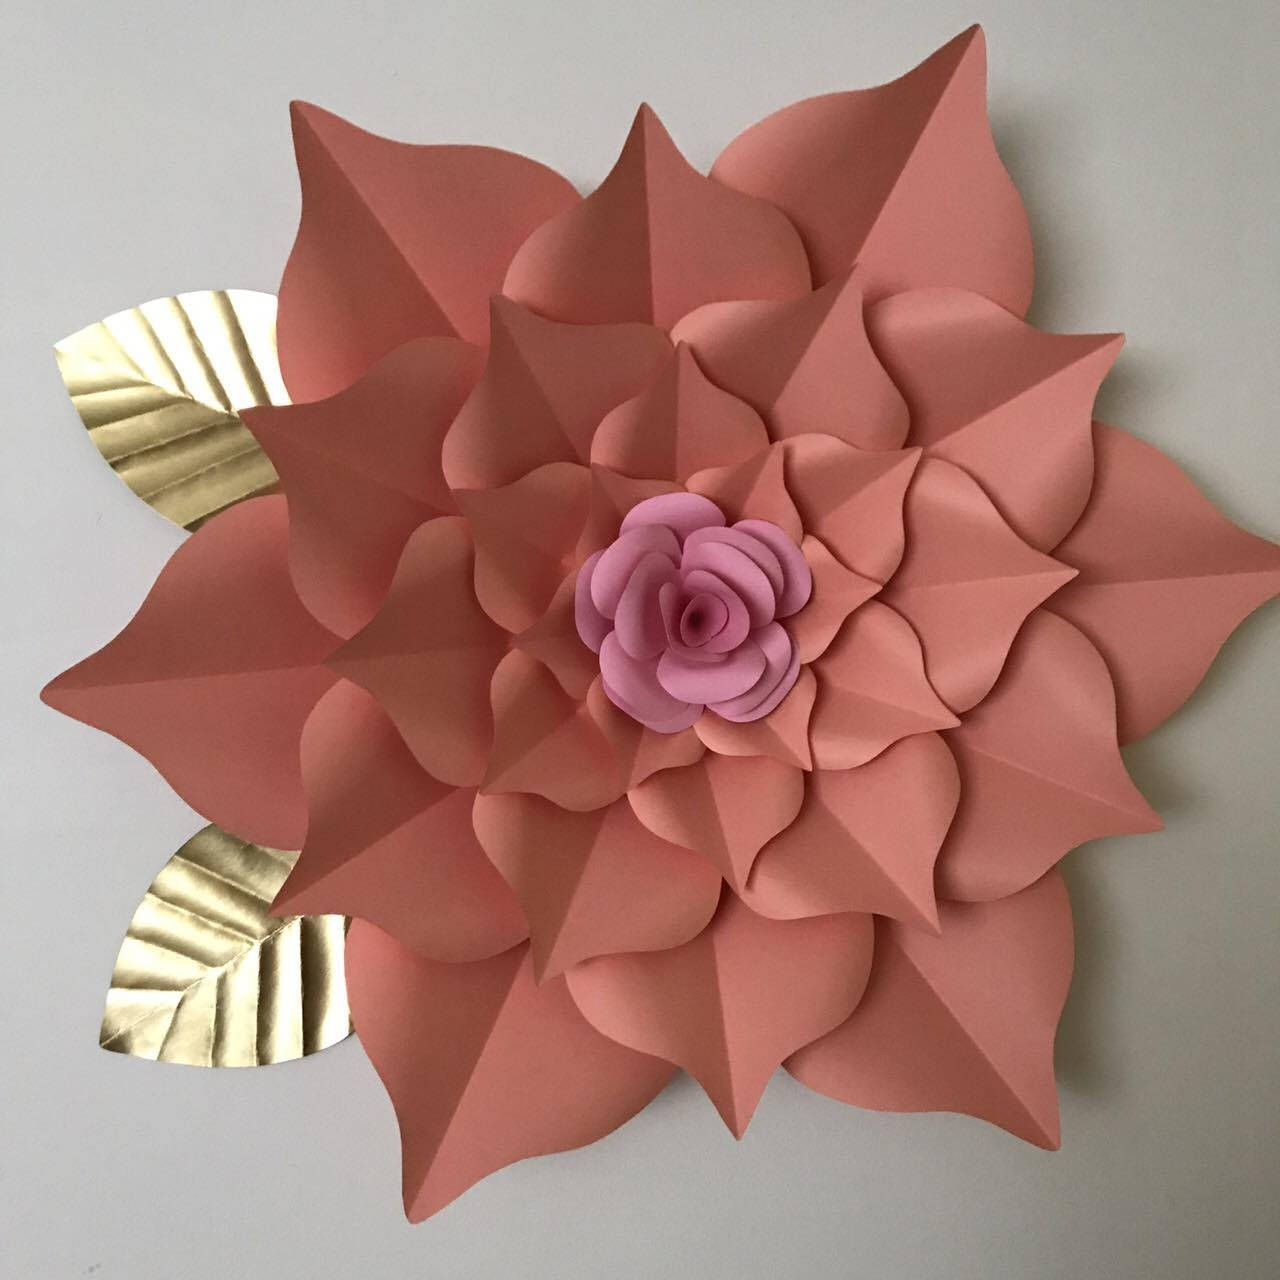 Pdf giant 40 inch flower the rosa mystica paper flower flores de pdf paper flower template digital version including the base giant 40 inch flower the rosa mystica by thecraftysagannie on etsy mightylinksfo